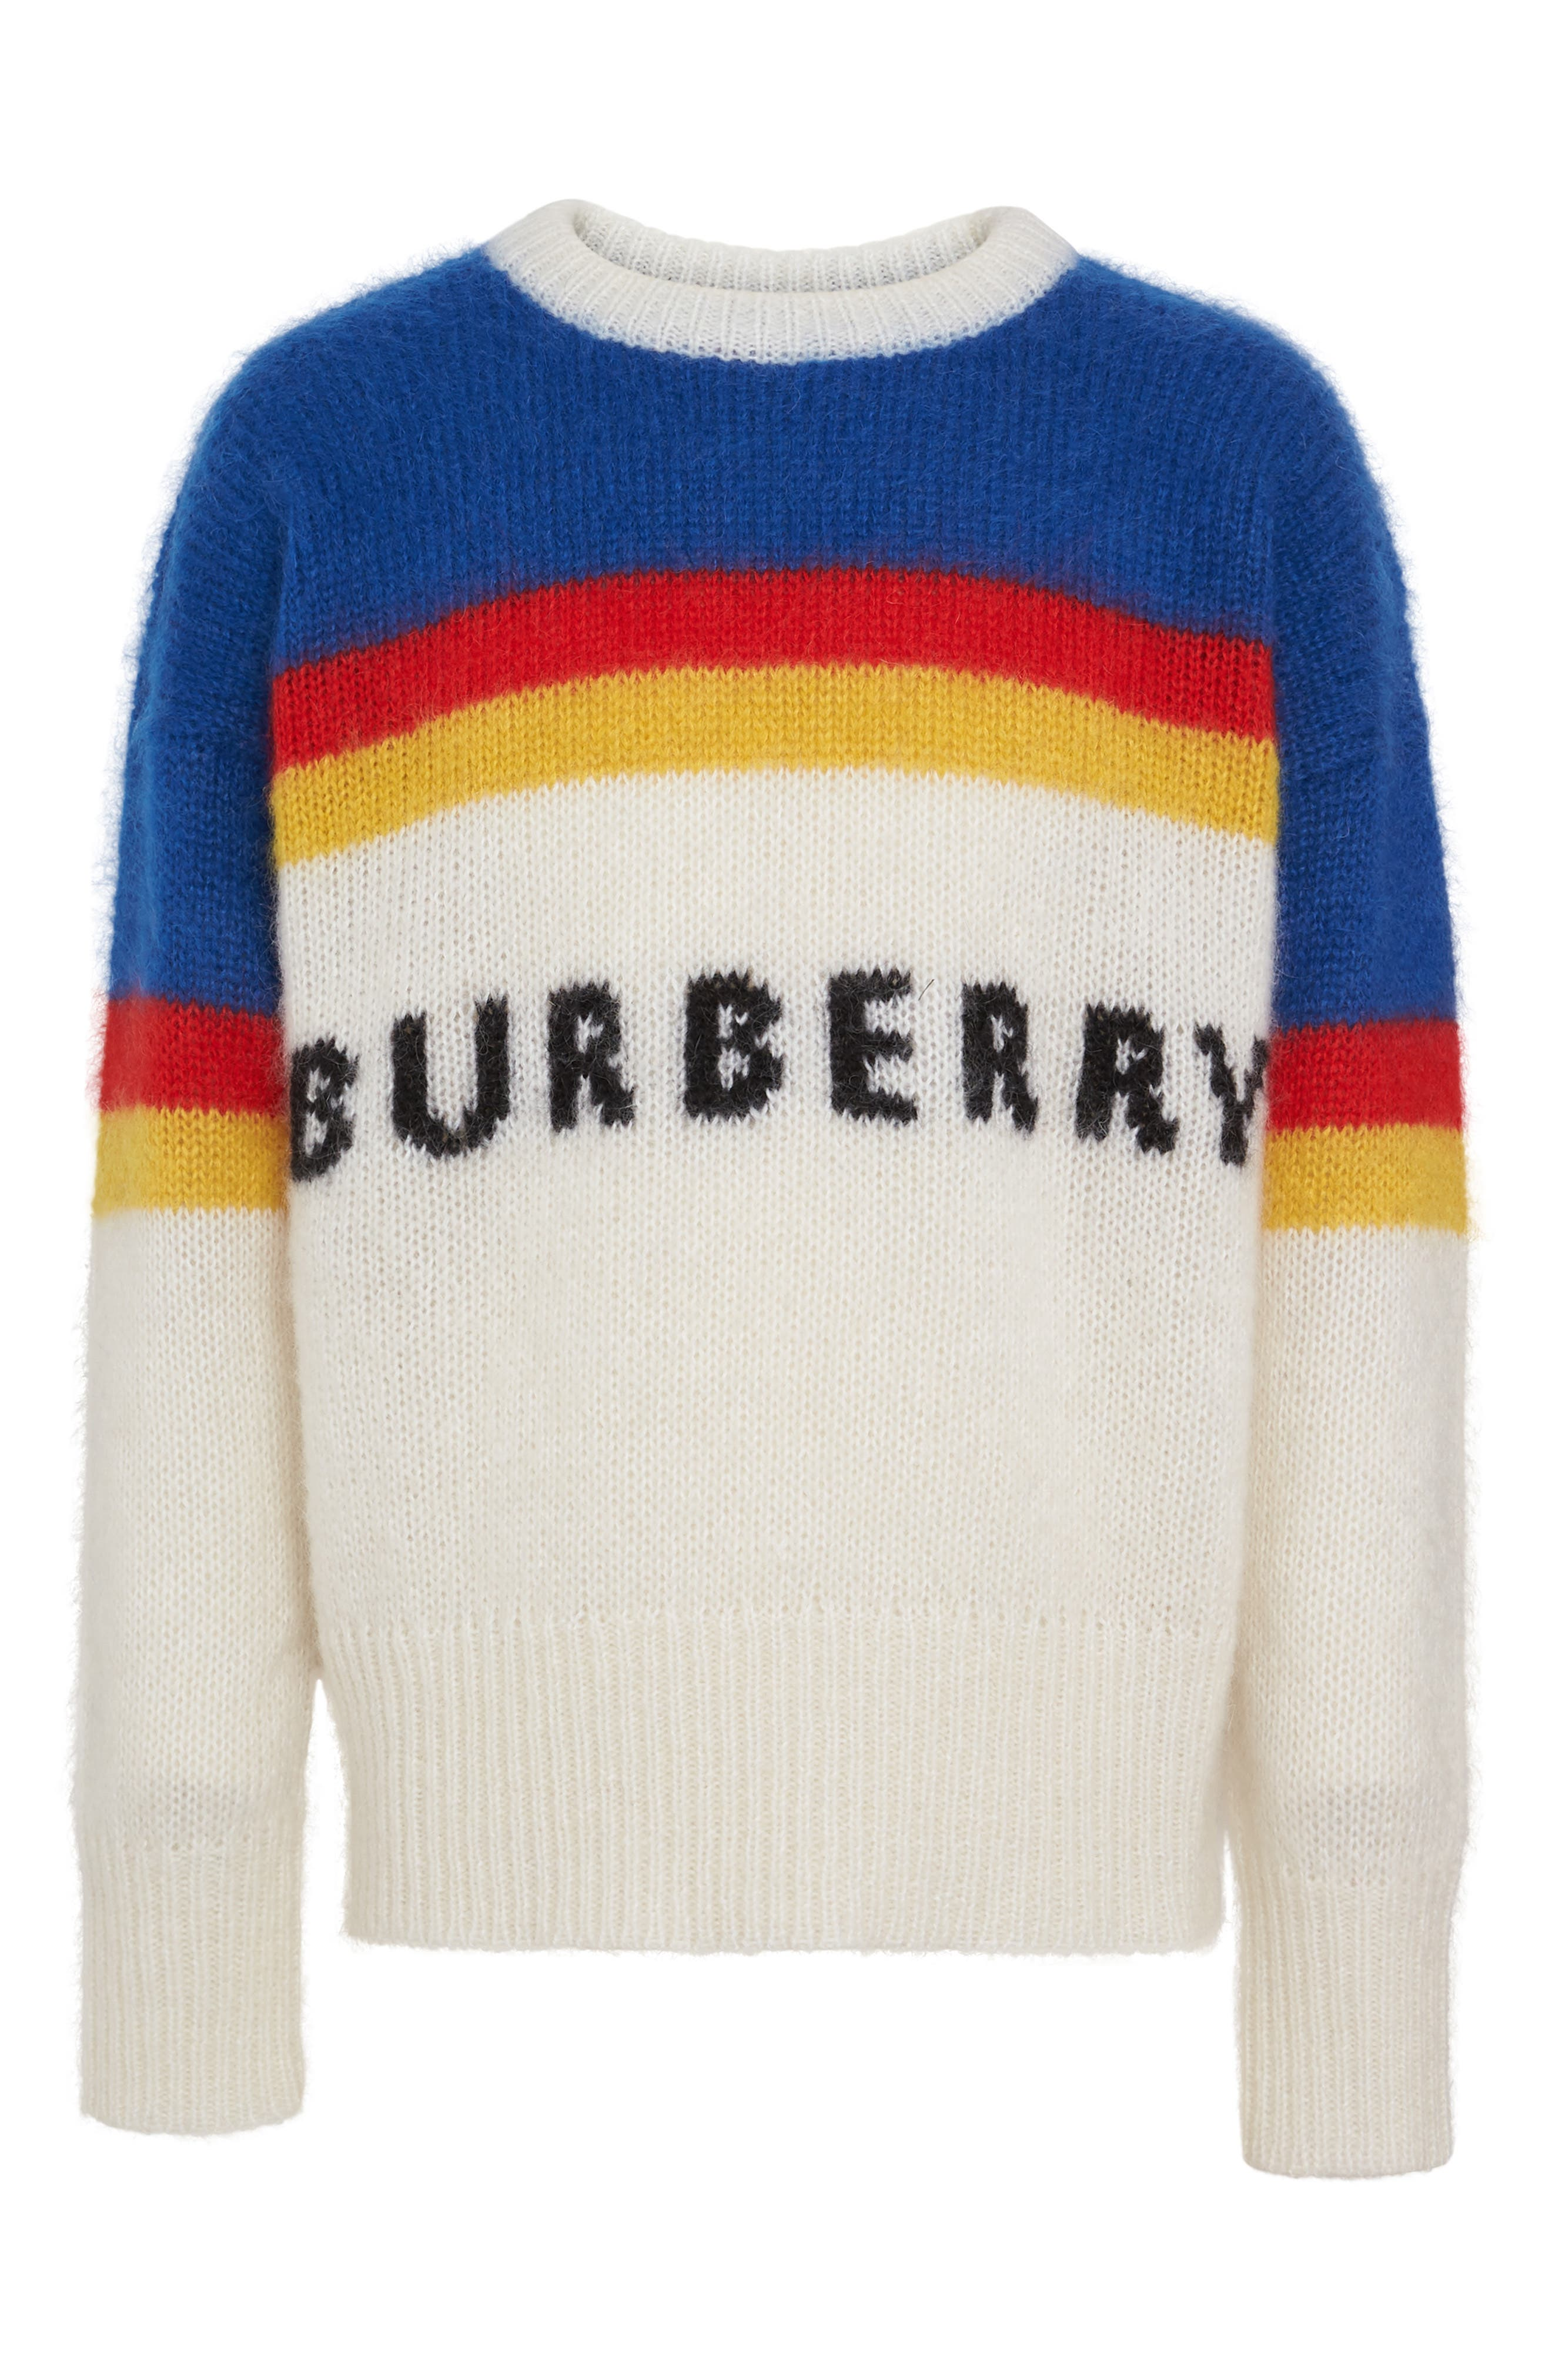 Osbourne Crewneck Sweater,                             Alternate thumbnail 4, color,                             400